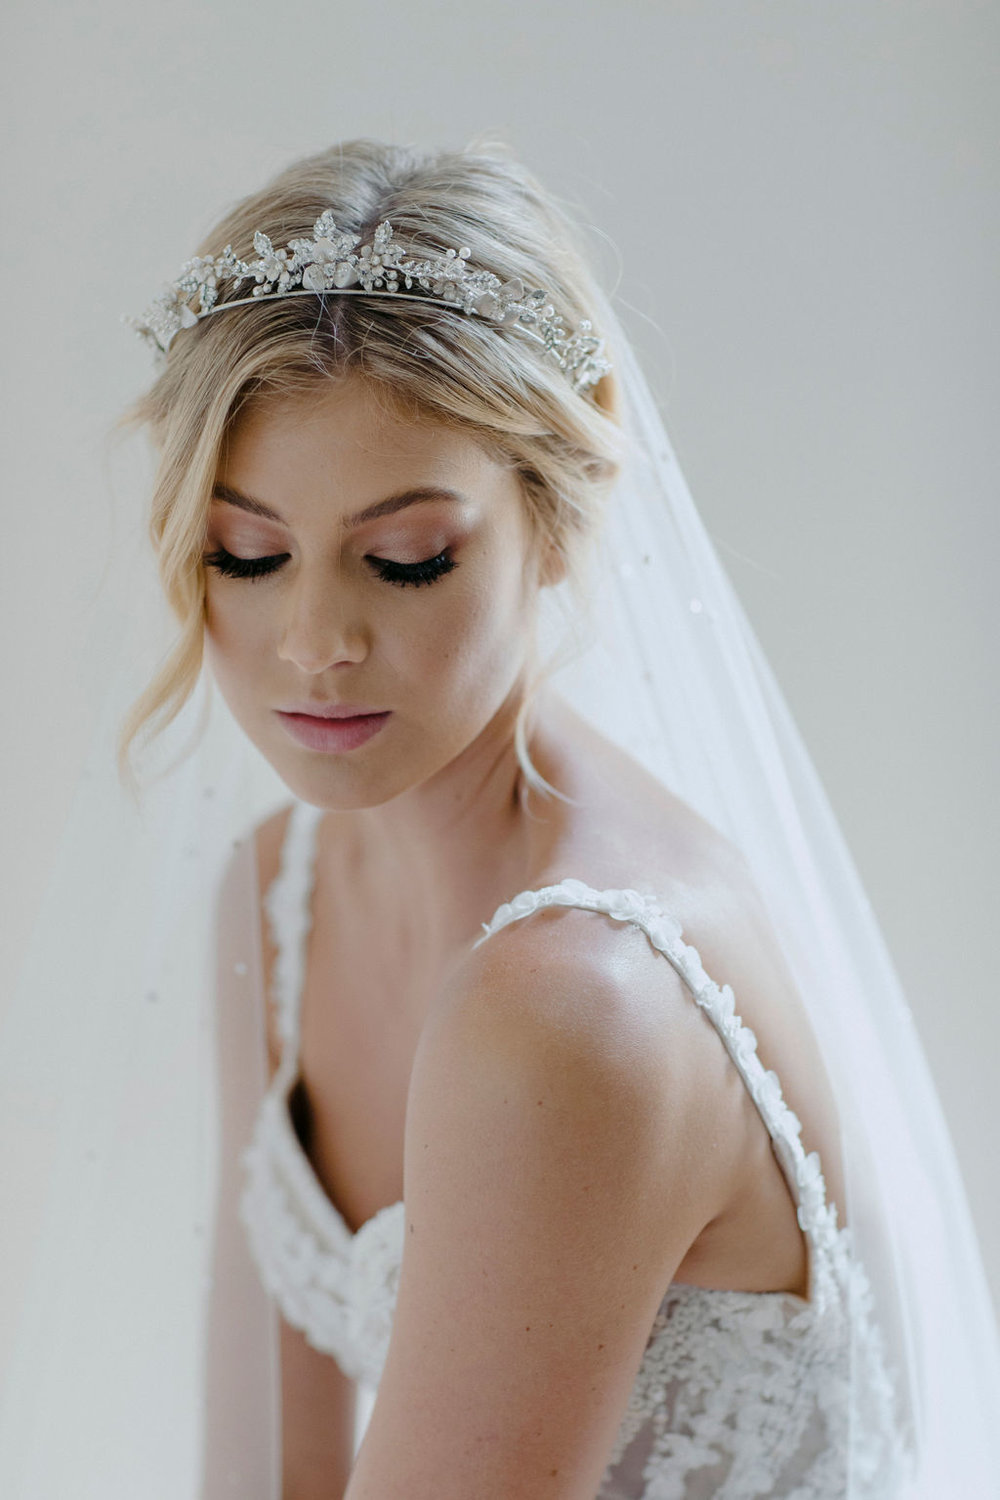 CASHMERE | CRYSTAL WEDDING TIARA by TANIA MARAS featured on LOVE FIND CO.